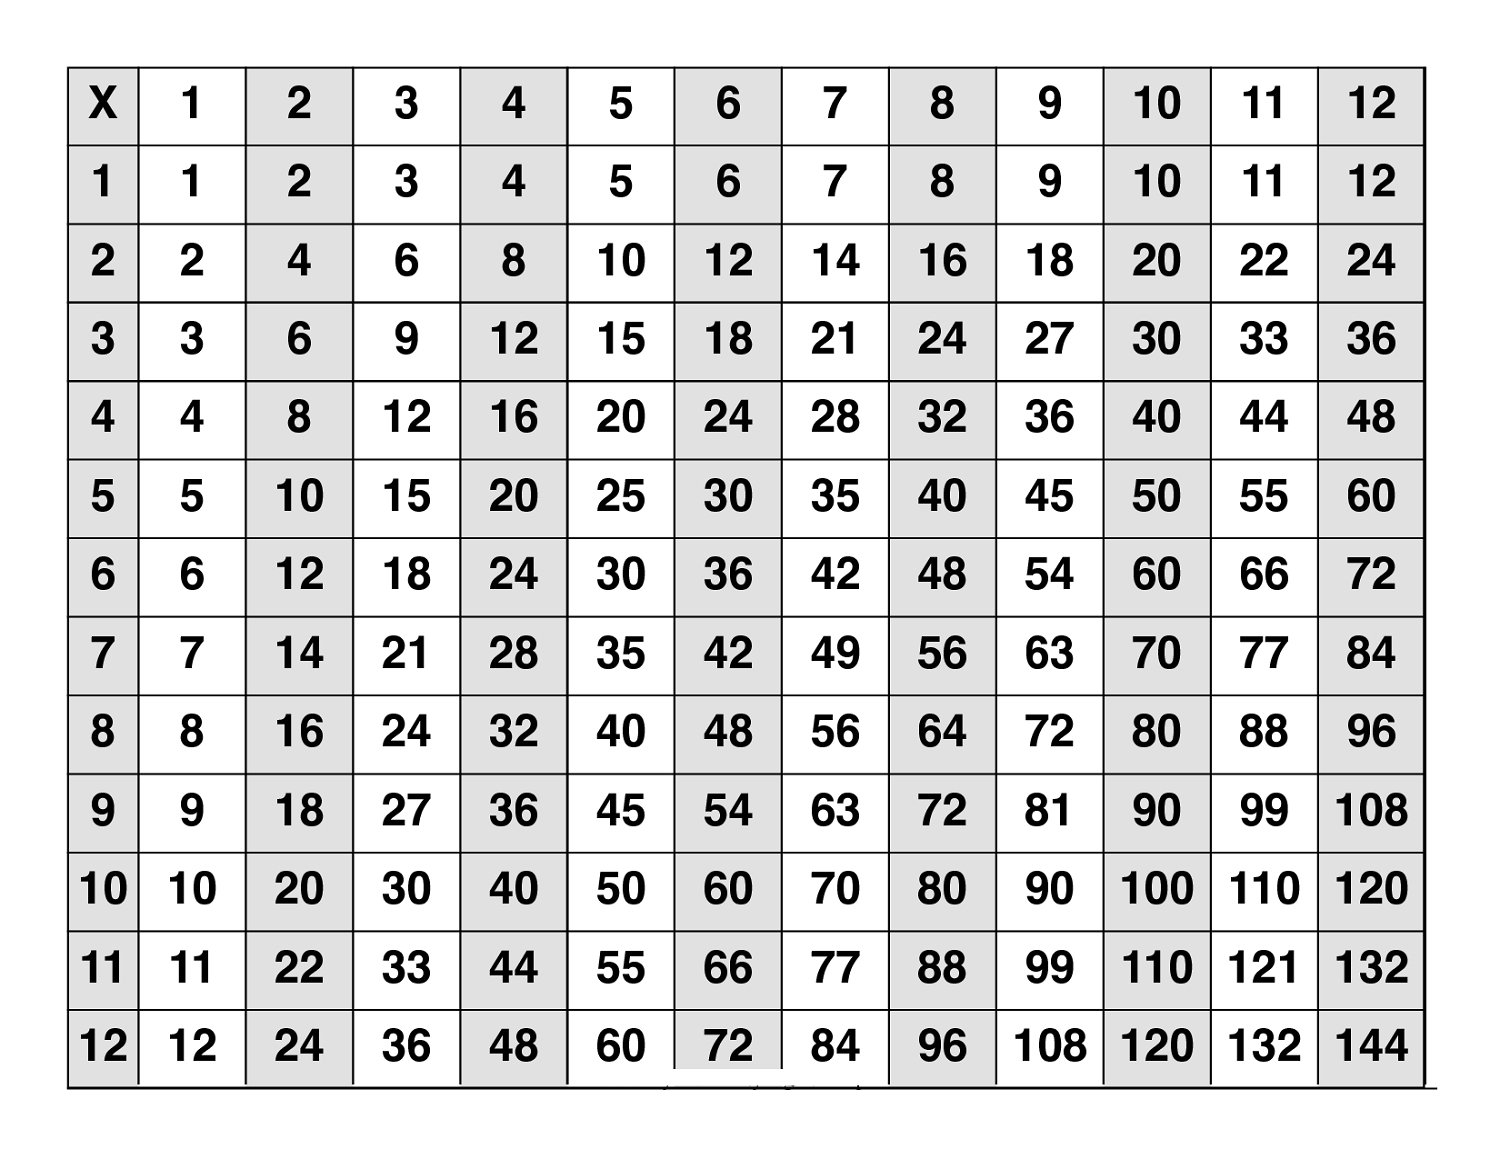 Large Multiplication Table To Train Memory | Multiplication inside Large Printable Multiplication Table